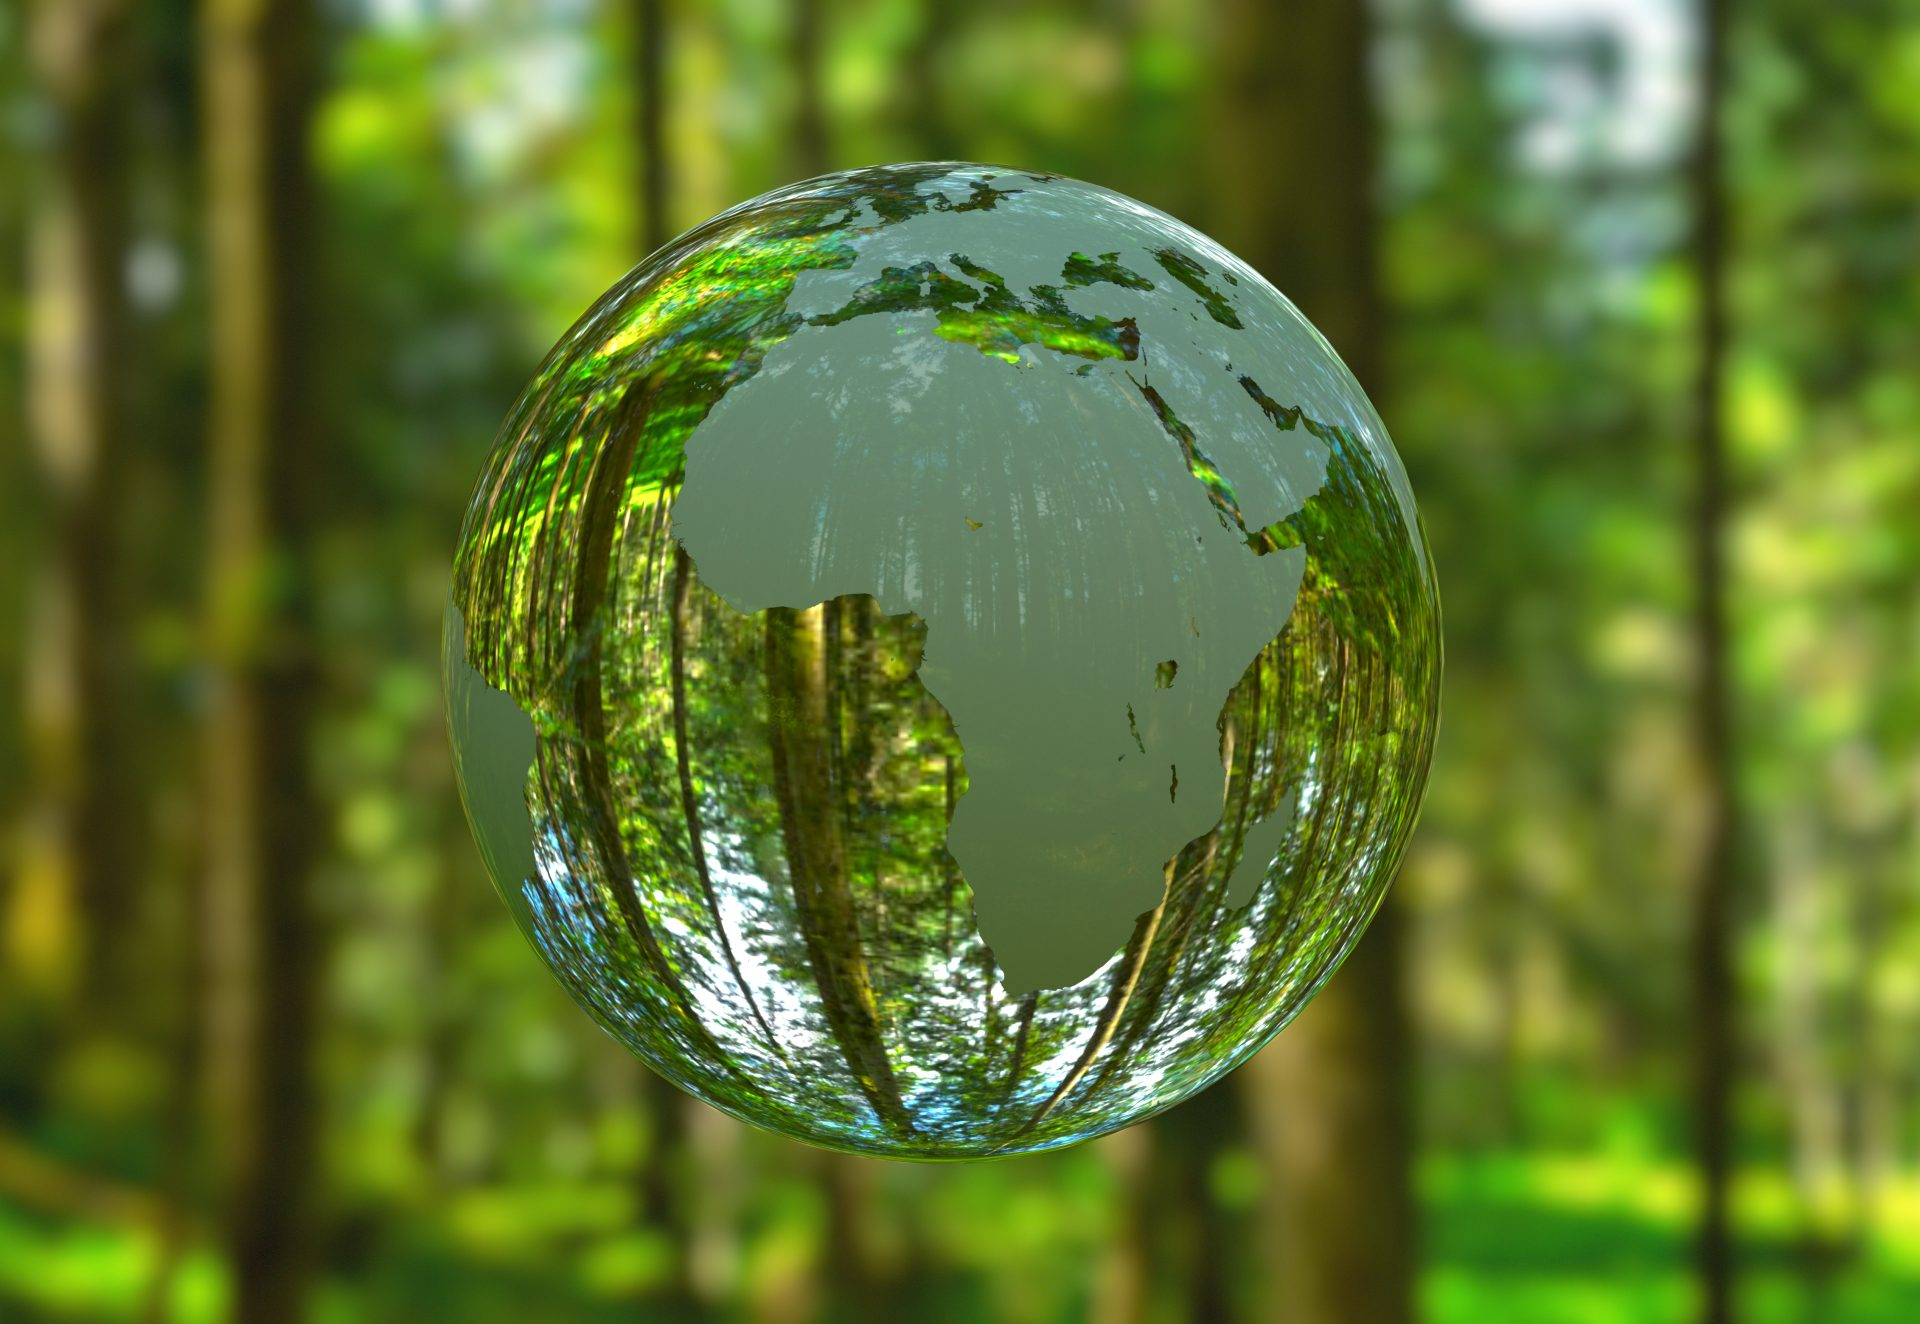 3d,Illustration,-,Planet,Earth,Shaped,Like,A,Crystal,Ball